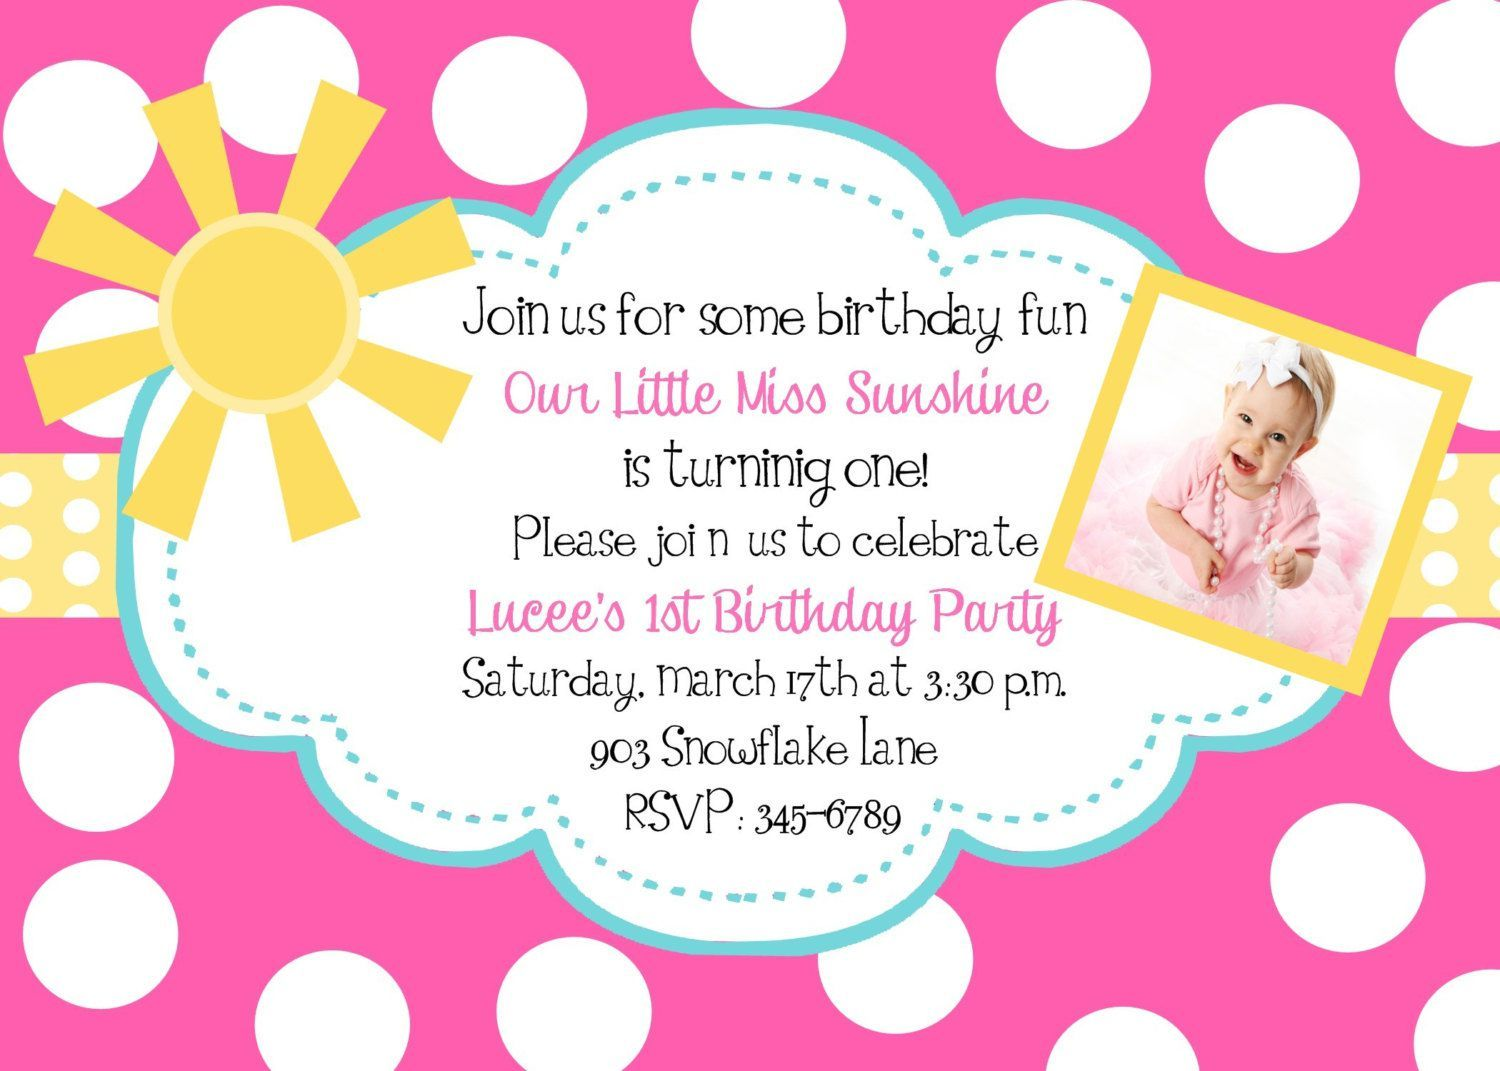 Birthday invitation wording for 3 year old birthday invitations birthday invitation wording for 3 year old filmwisefo